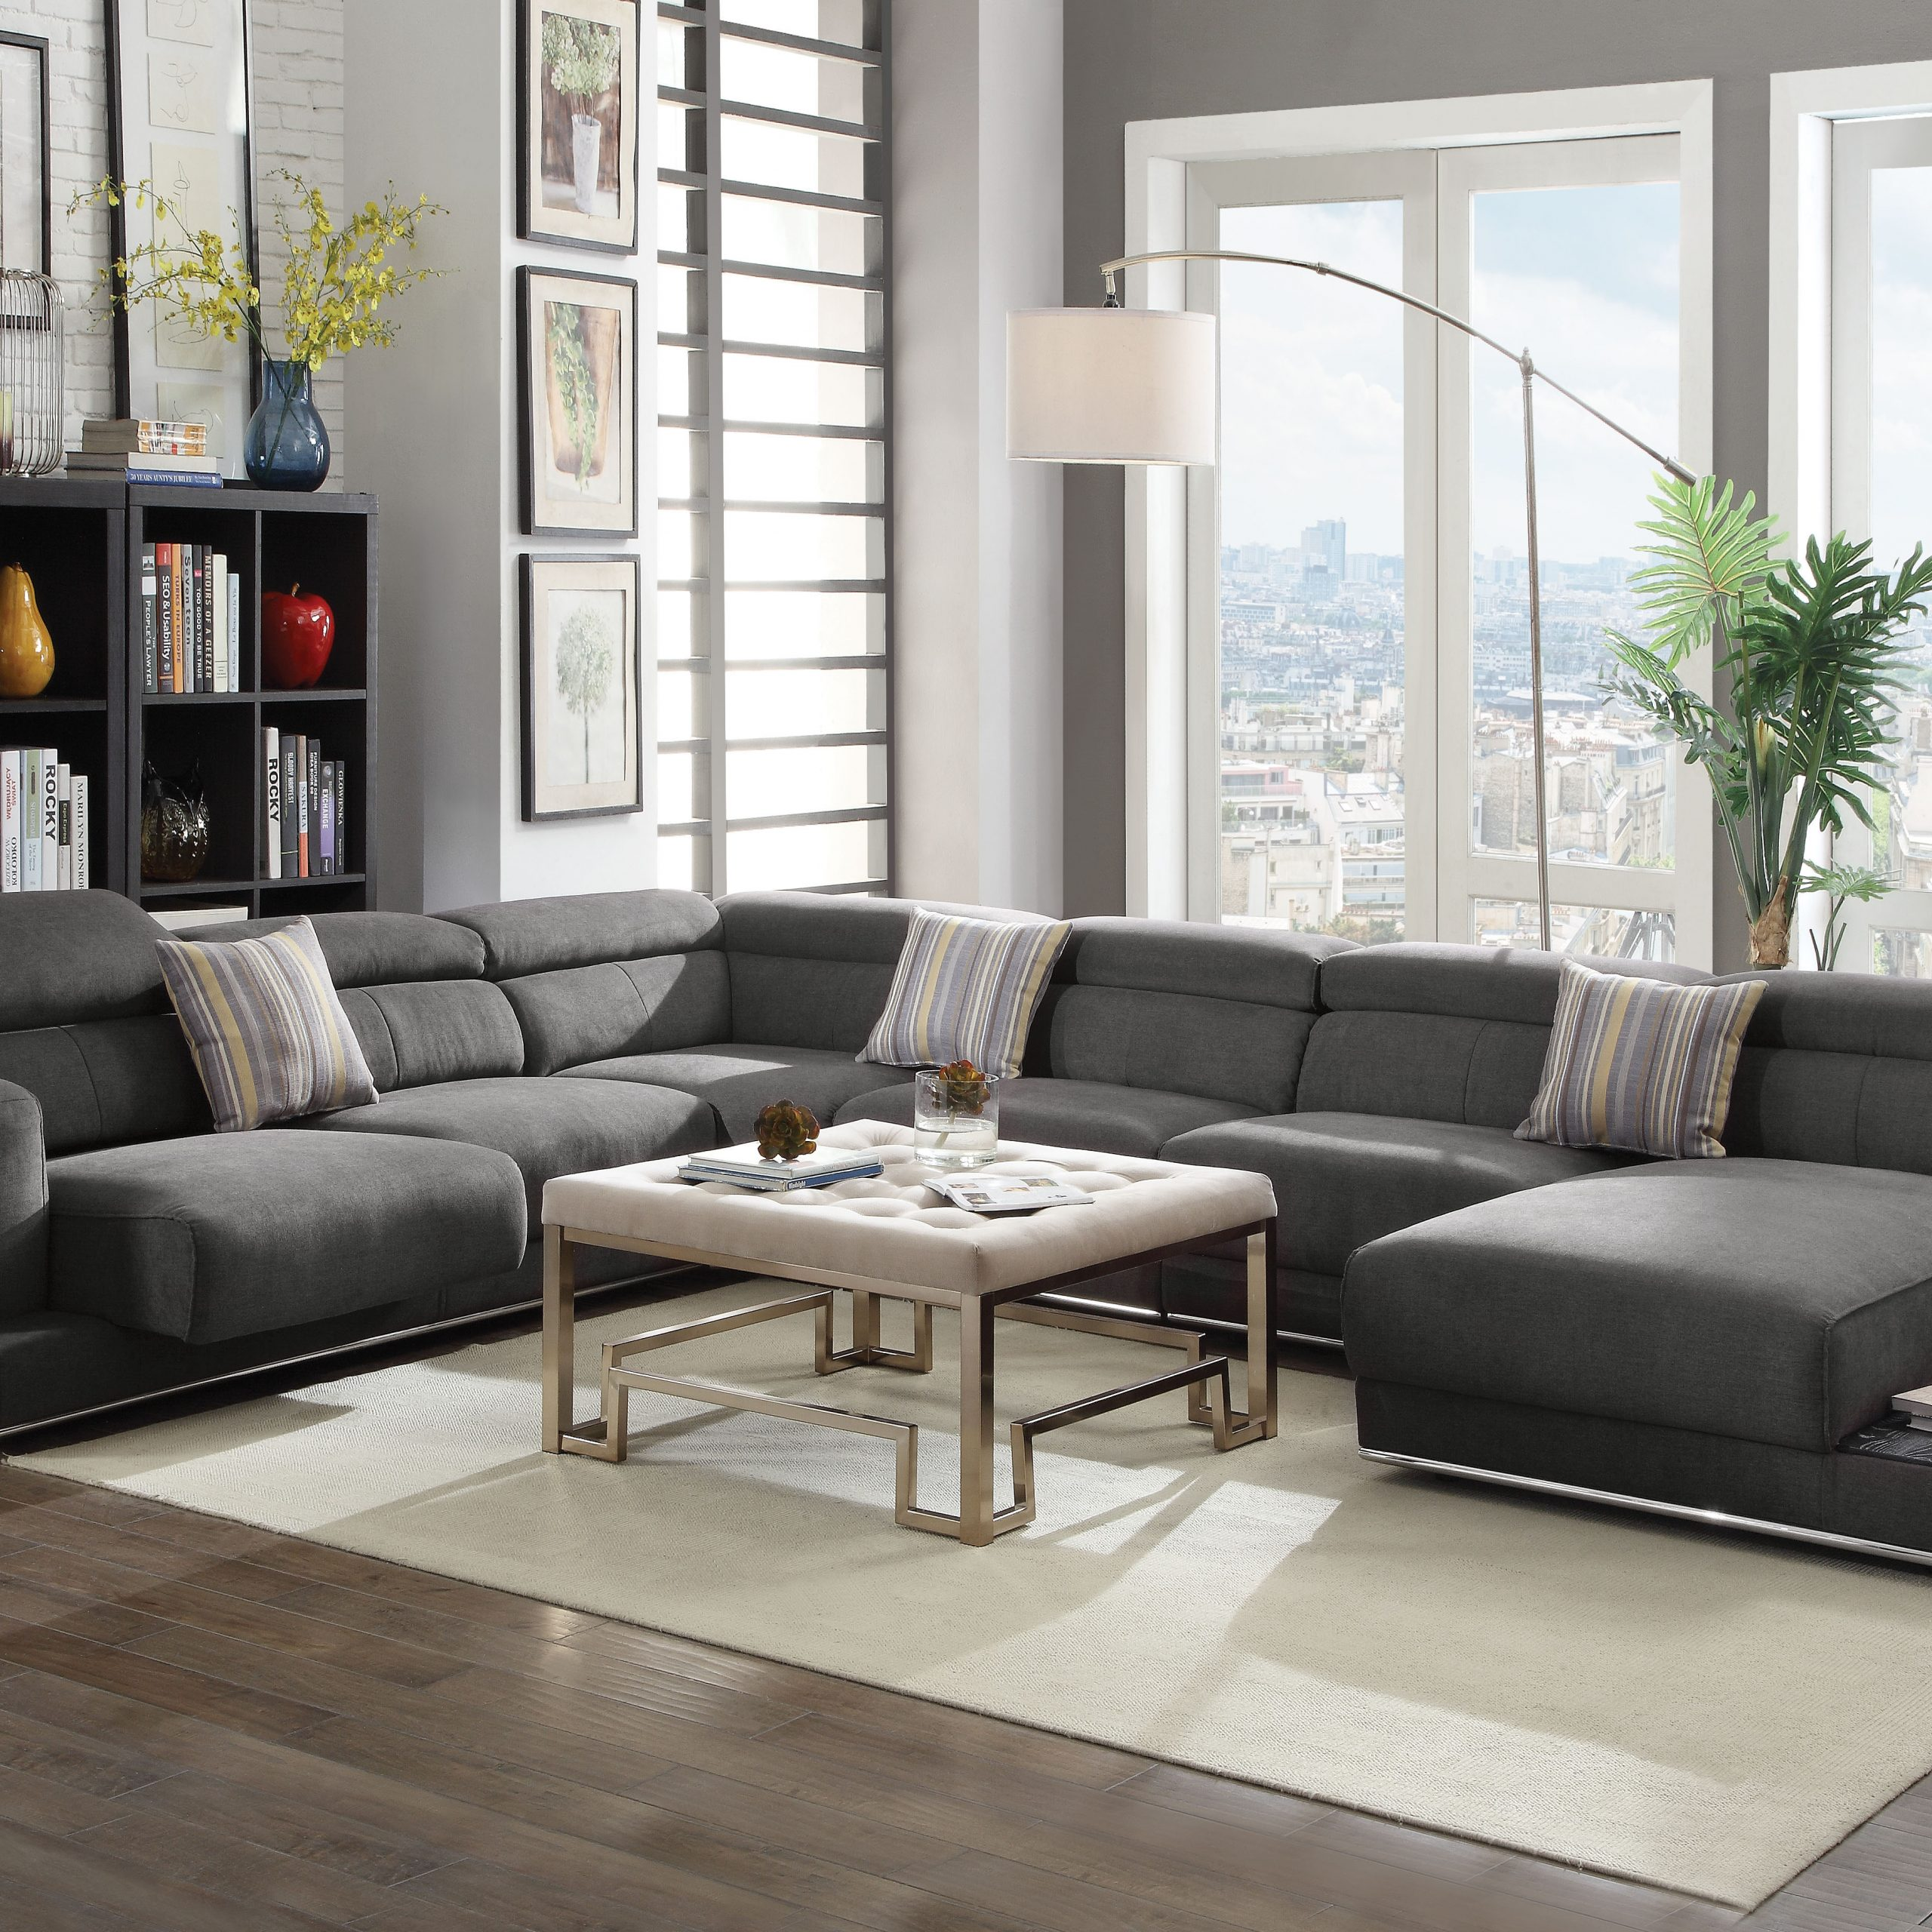 Acme Alwin Sectional Sofa In Dark Gray Fabric Upholstery With Polyfiber Linen Fabric Sectional Sofas Dark Gray (View 12 of 15)